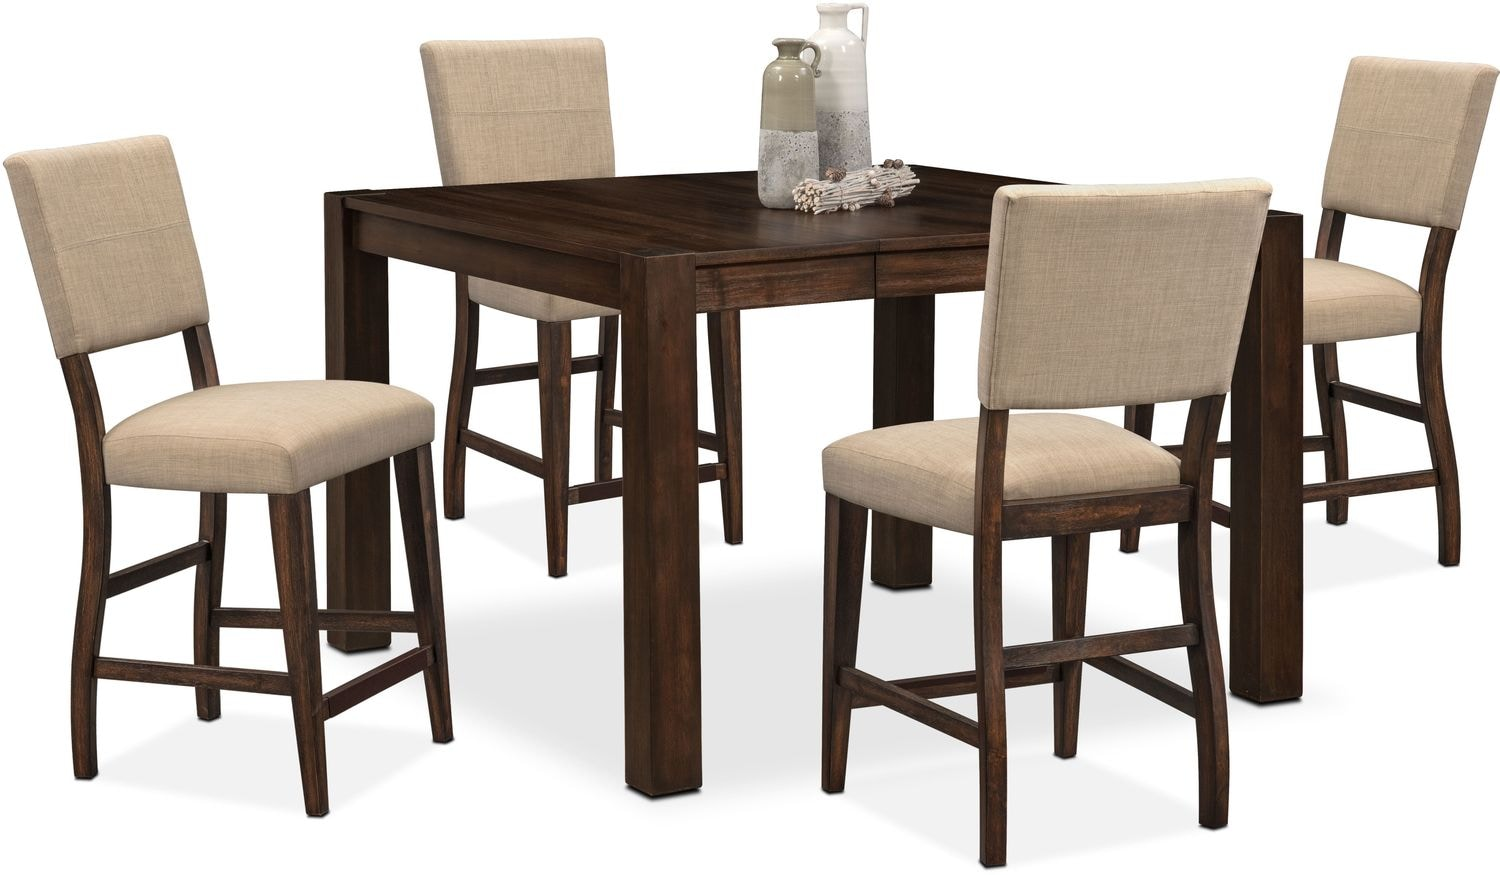 Tribeca Counter-Height Table and 4 Upholstered Side Chairs - Tobacco  sc 1 st  Value City Furniture & Dining Room Dinette Tables | Value City Furniture | Value City ...